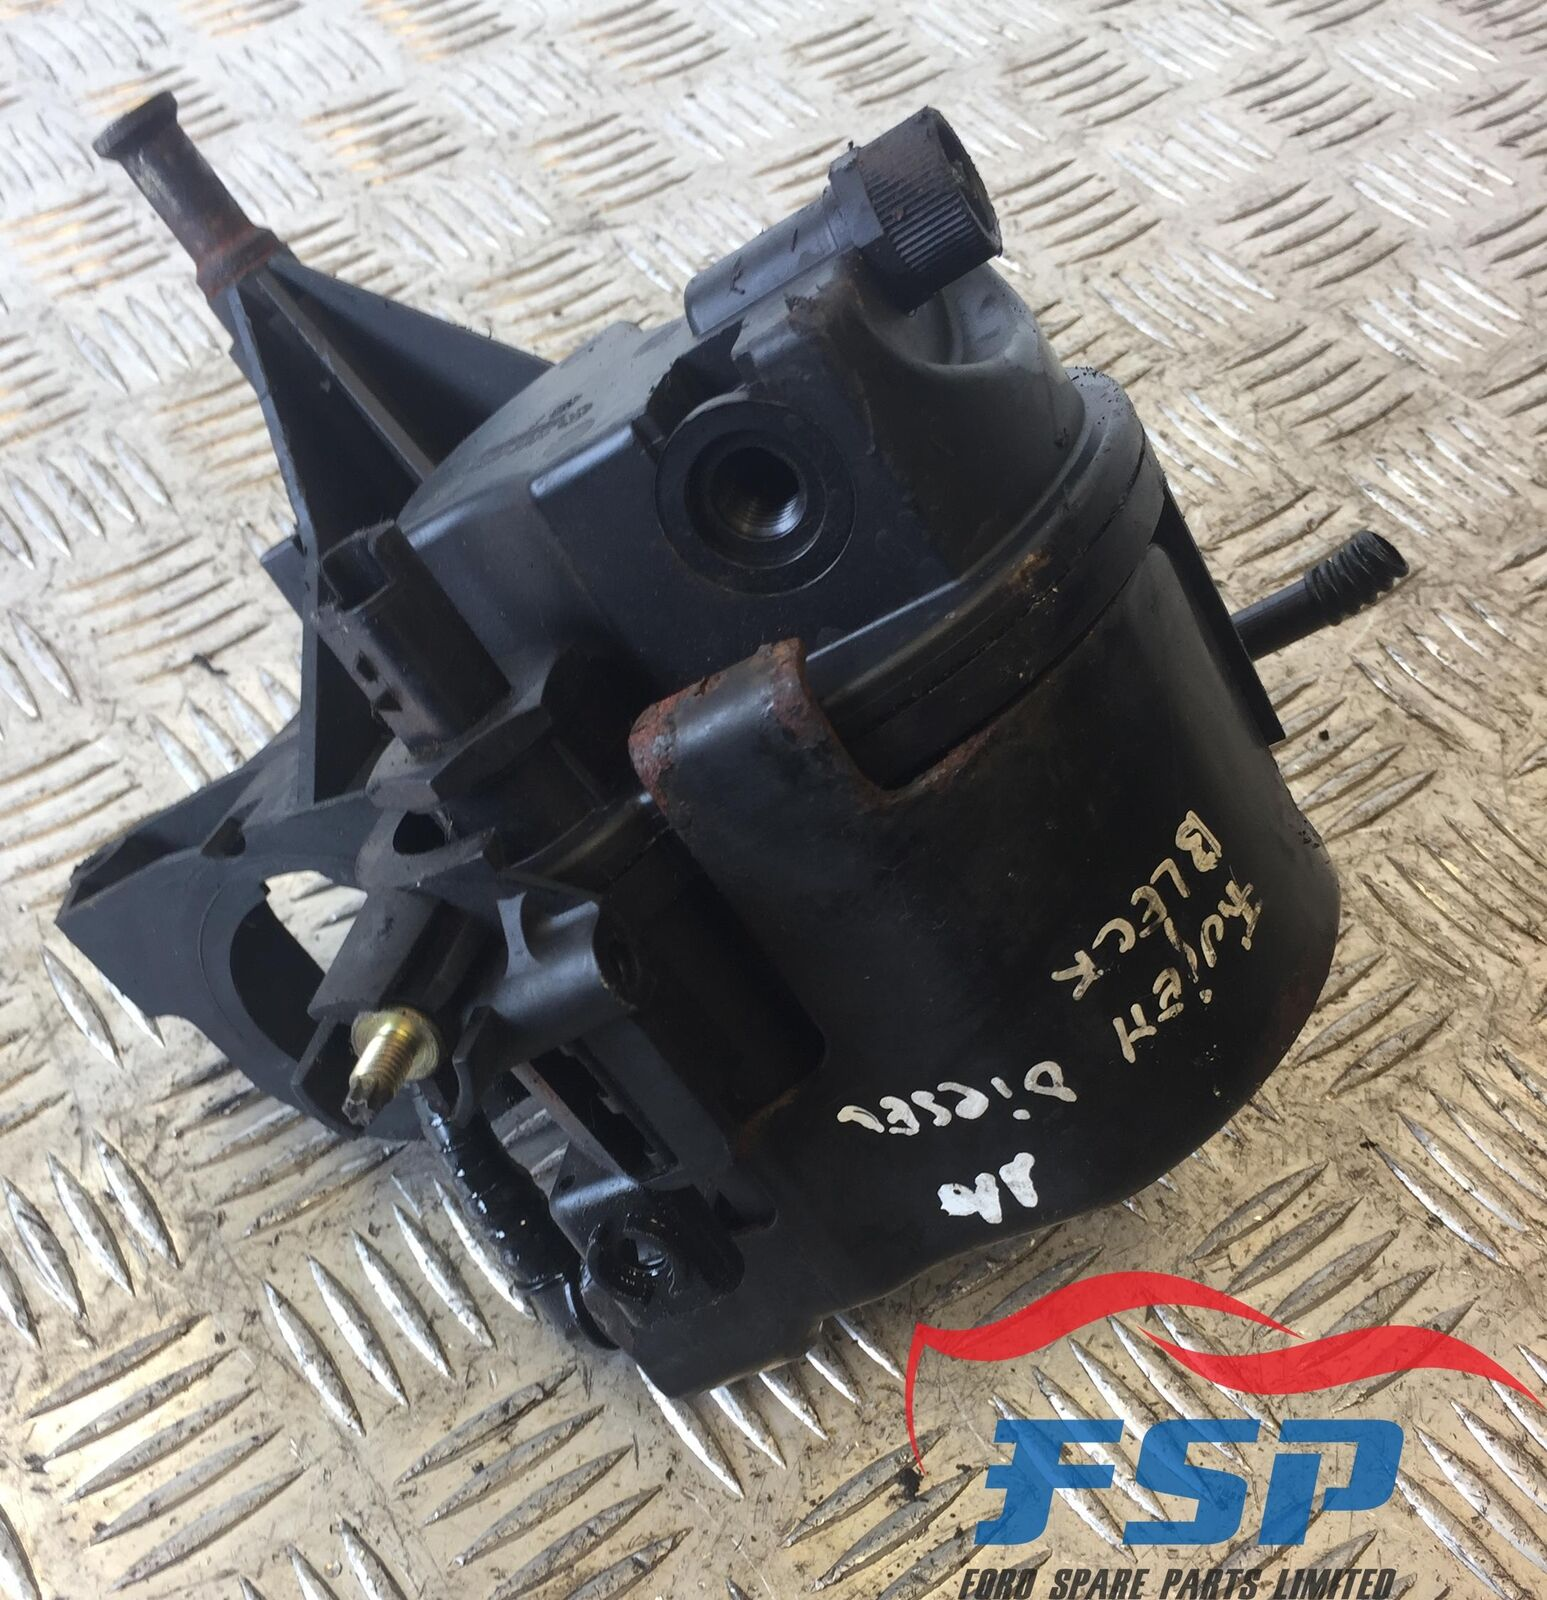 Ford Fusion 2 1.4 Diesel 2002-2006 Fuel Filter Housing 1 of 2Only 1  available ...